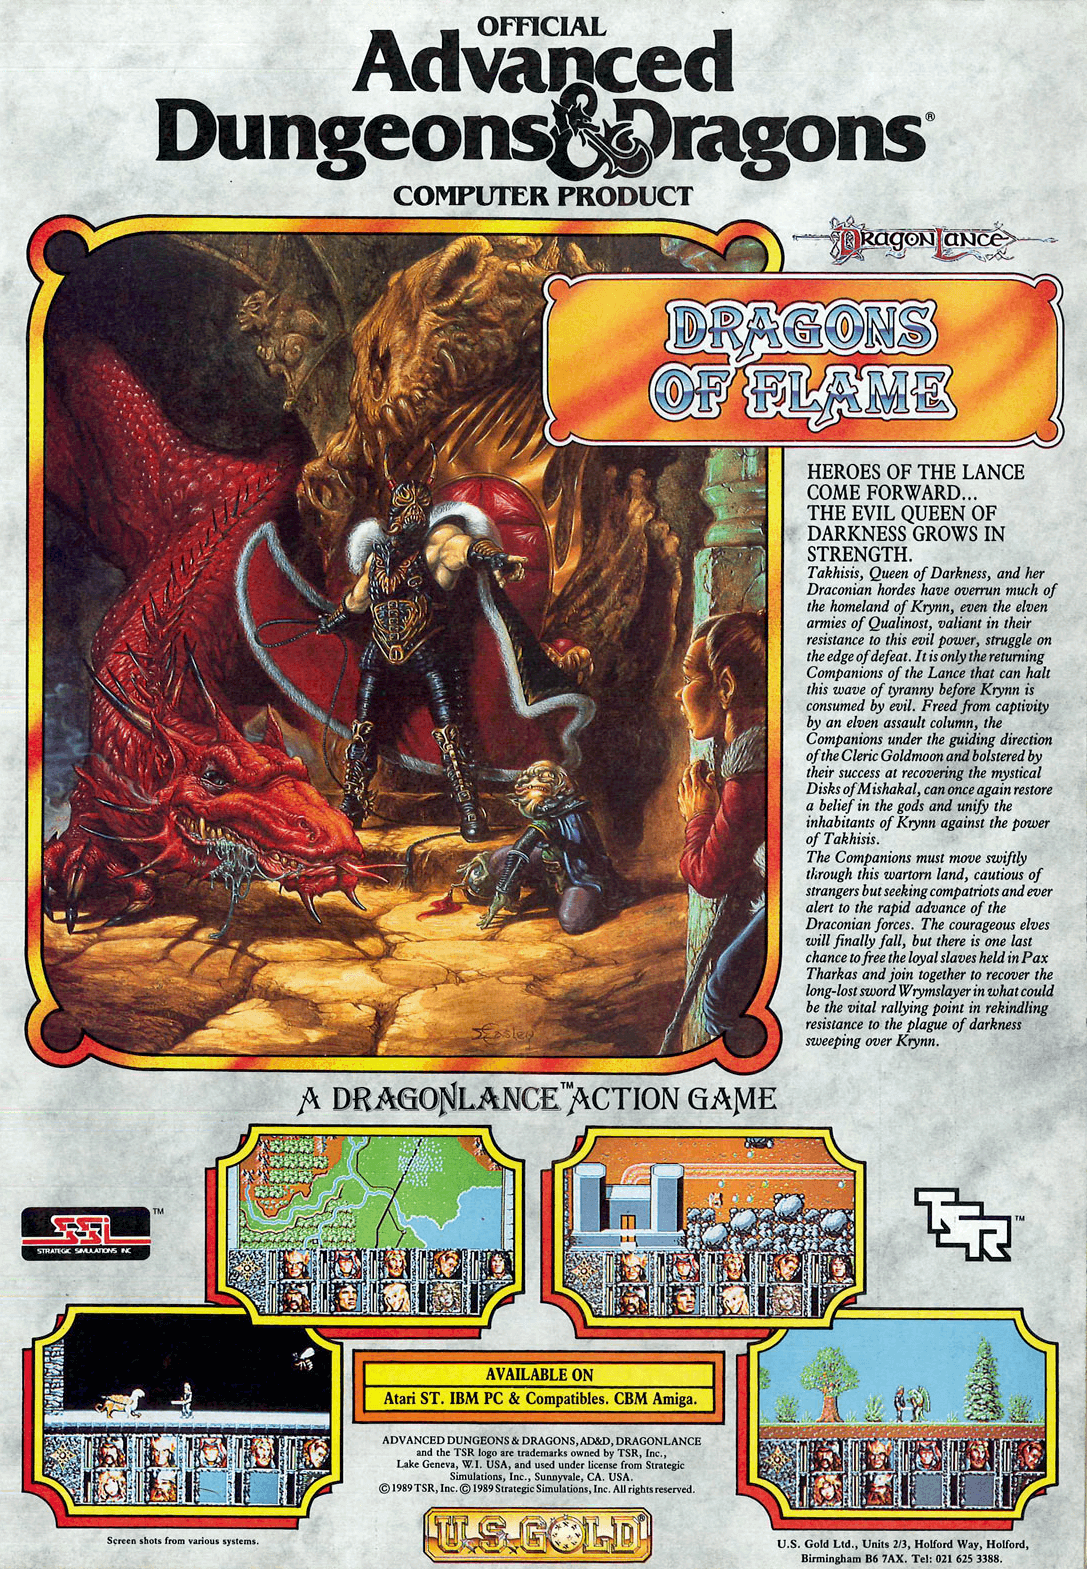 **Description**   Set in between the SSI's AD&D Dragonlance action games Heroes of the Lance and Shadow Sorcerer. This game follows the tradition of Heroes of the Lance with a side-scrolling, action-oriented view, a breakaway from the standard GoldBox RPGs. Plot-wise, it also takes place between those two games, following closely the novel/game modules written by Weiss/Hickman.  You take control of one character at a time, with each hero having different abilities.  **Cover**   The game box's cover (and start screen!) features a painting by artist Jeff Easley, earlier used as the front cover to Douglas Niles' 1984 RPG module of (unusually) the same name.  **Alternate title**   Dragons of Flame (ドラゴン・オブ・フレイム Doragon obu Fureimu)